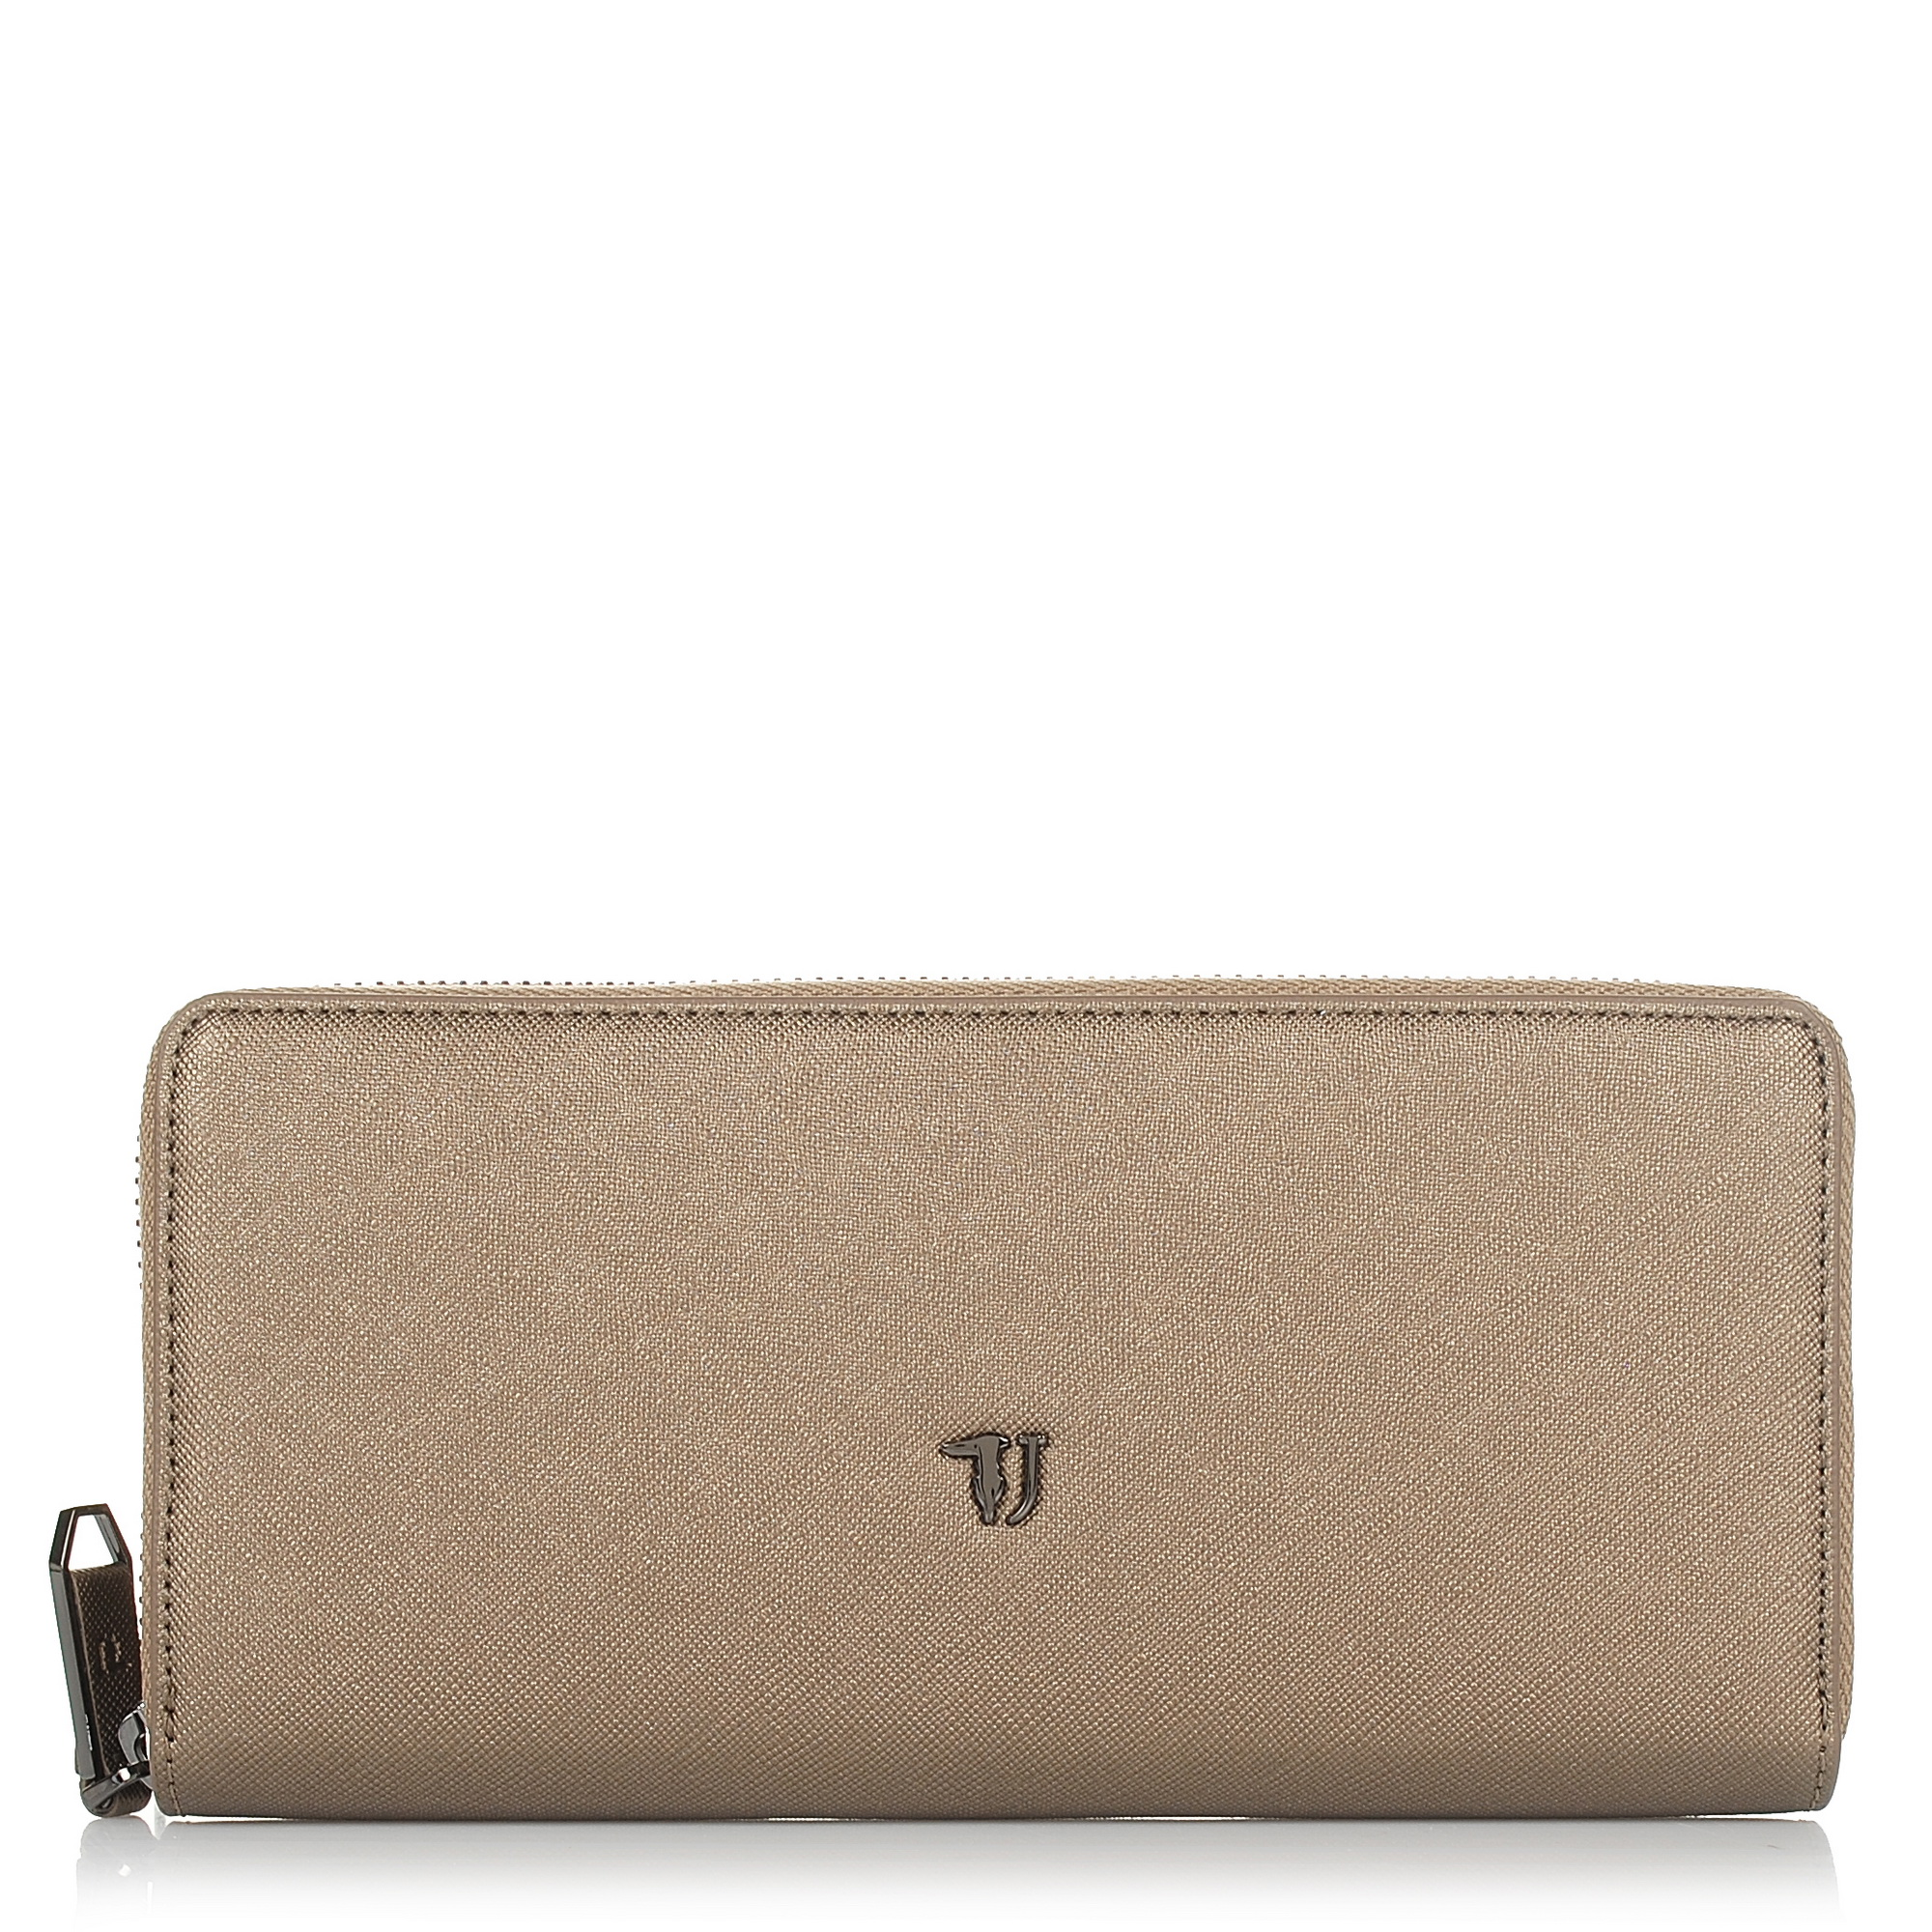 Πορτοφόλι Κασετίνα Trussardi Jeans Paprica Zip Around Wallet Ecoleather 75W00099